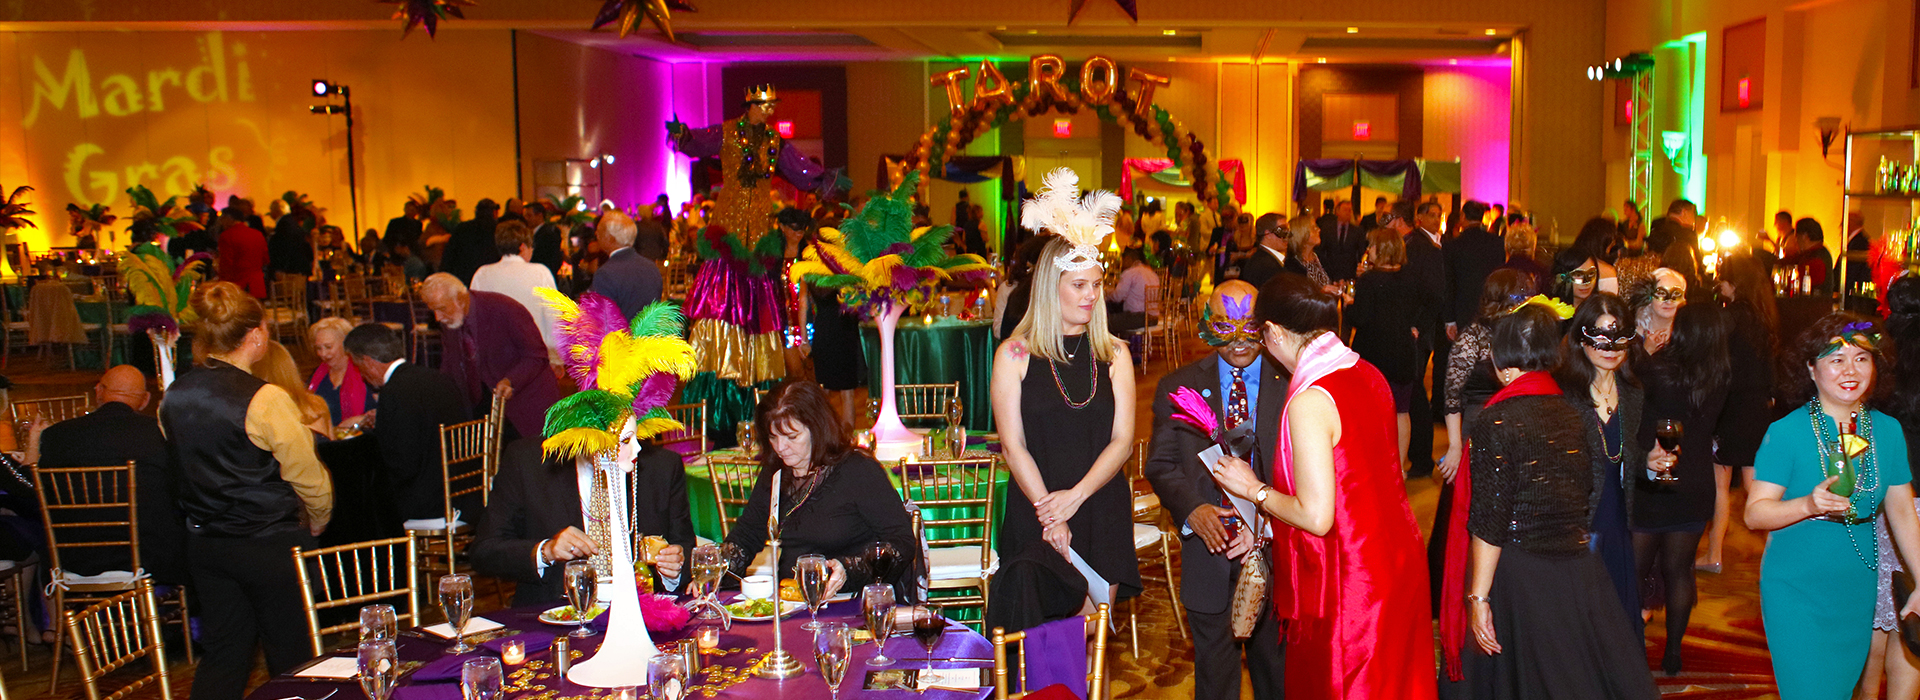 CSUSB Palm Desert Campus to host Mardi Gras-style fundraiser for hospitality management program